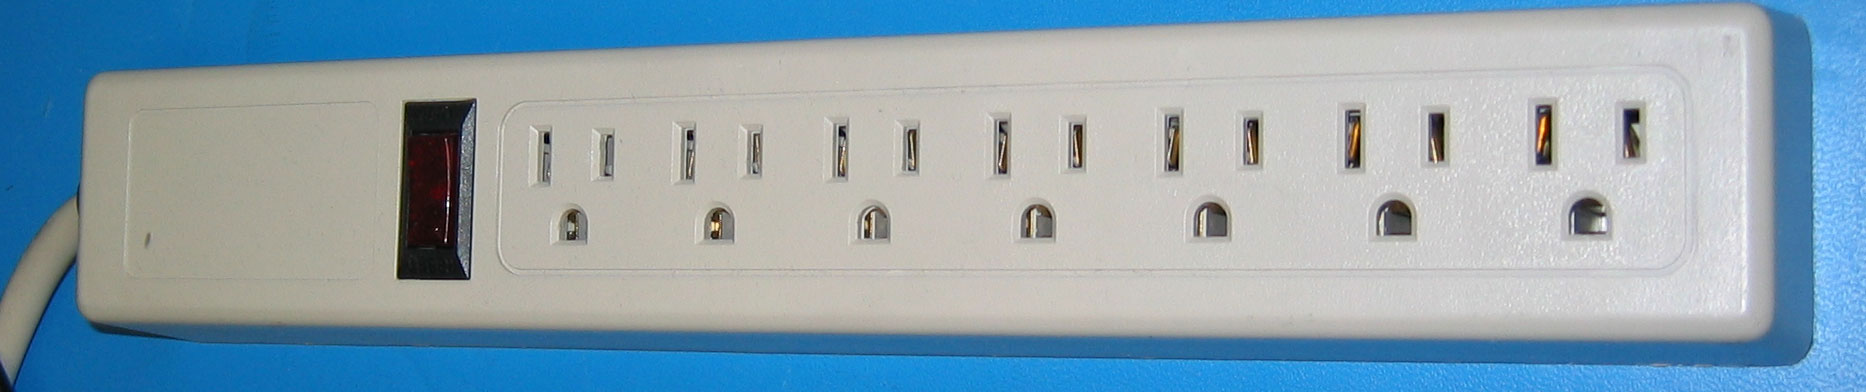 Image Credits: US-power-strip-rotated via Wikimedia Commons (Licensed under CC BY-SA 3.0)